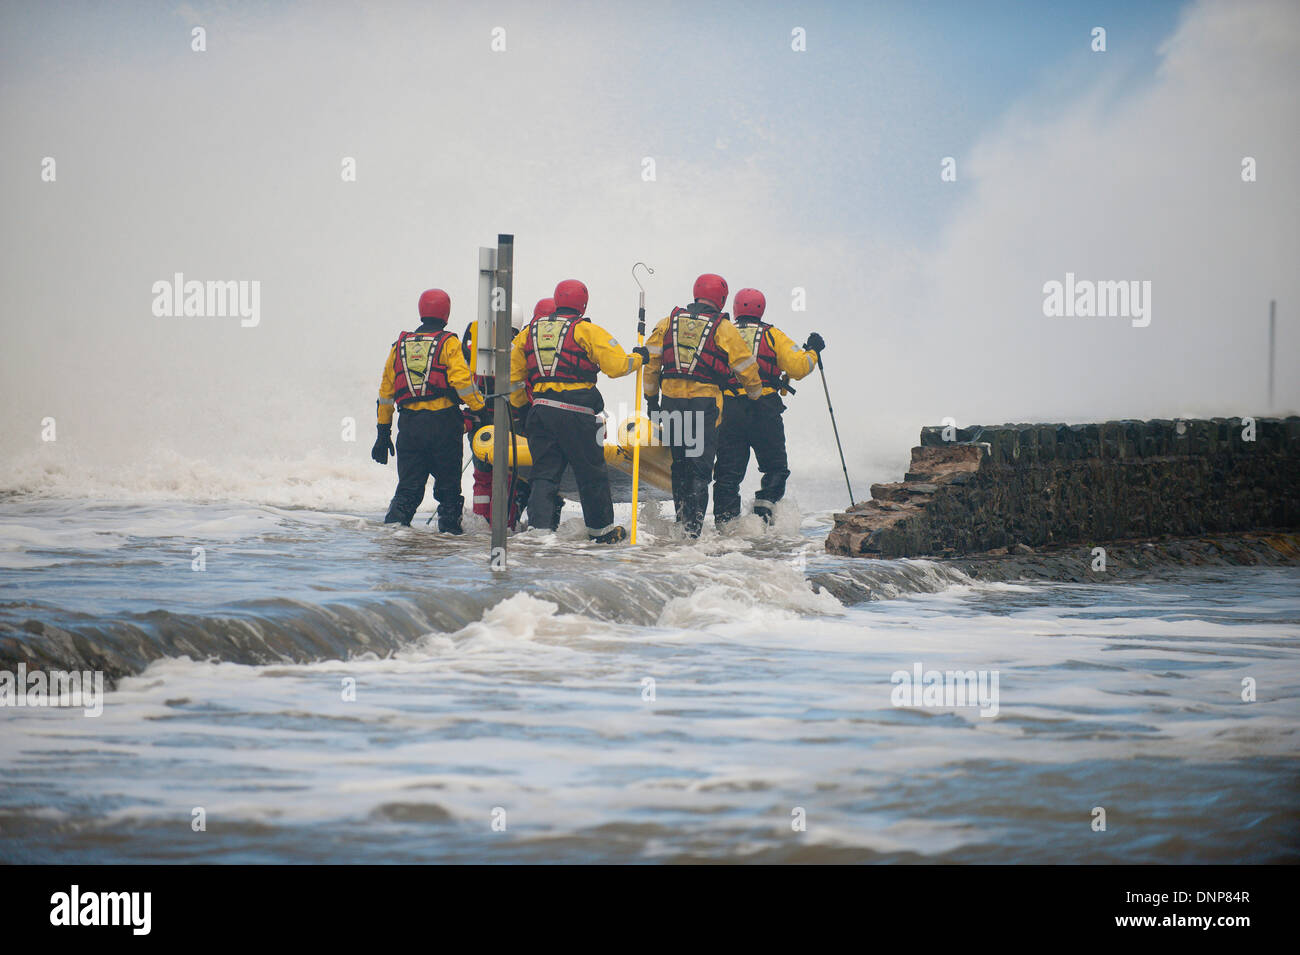 Barmouth, Gwynedd, Wales, UK. 3rd January 2014. Coastguards deal with flooding of Tairheli estate as huge wav es - Stock Image